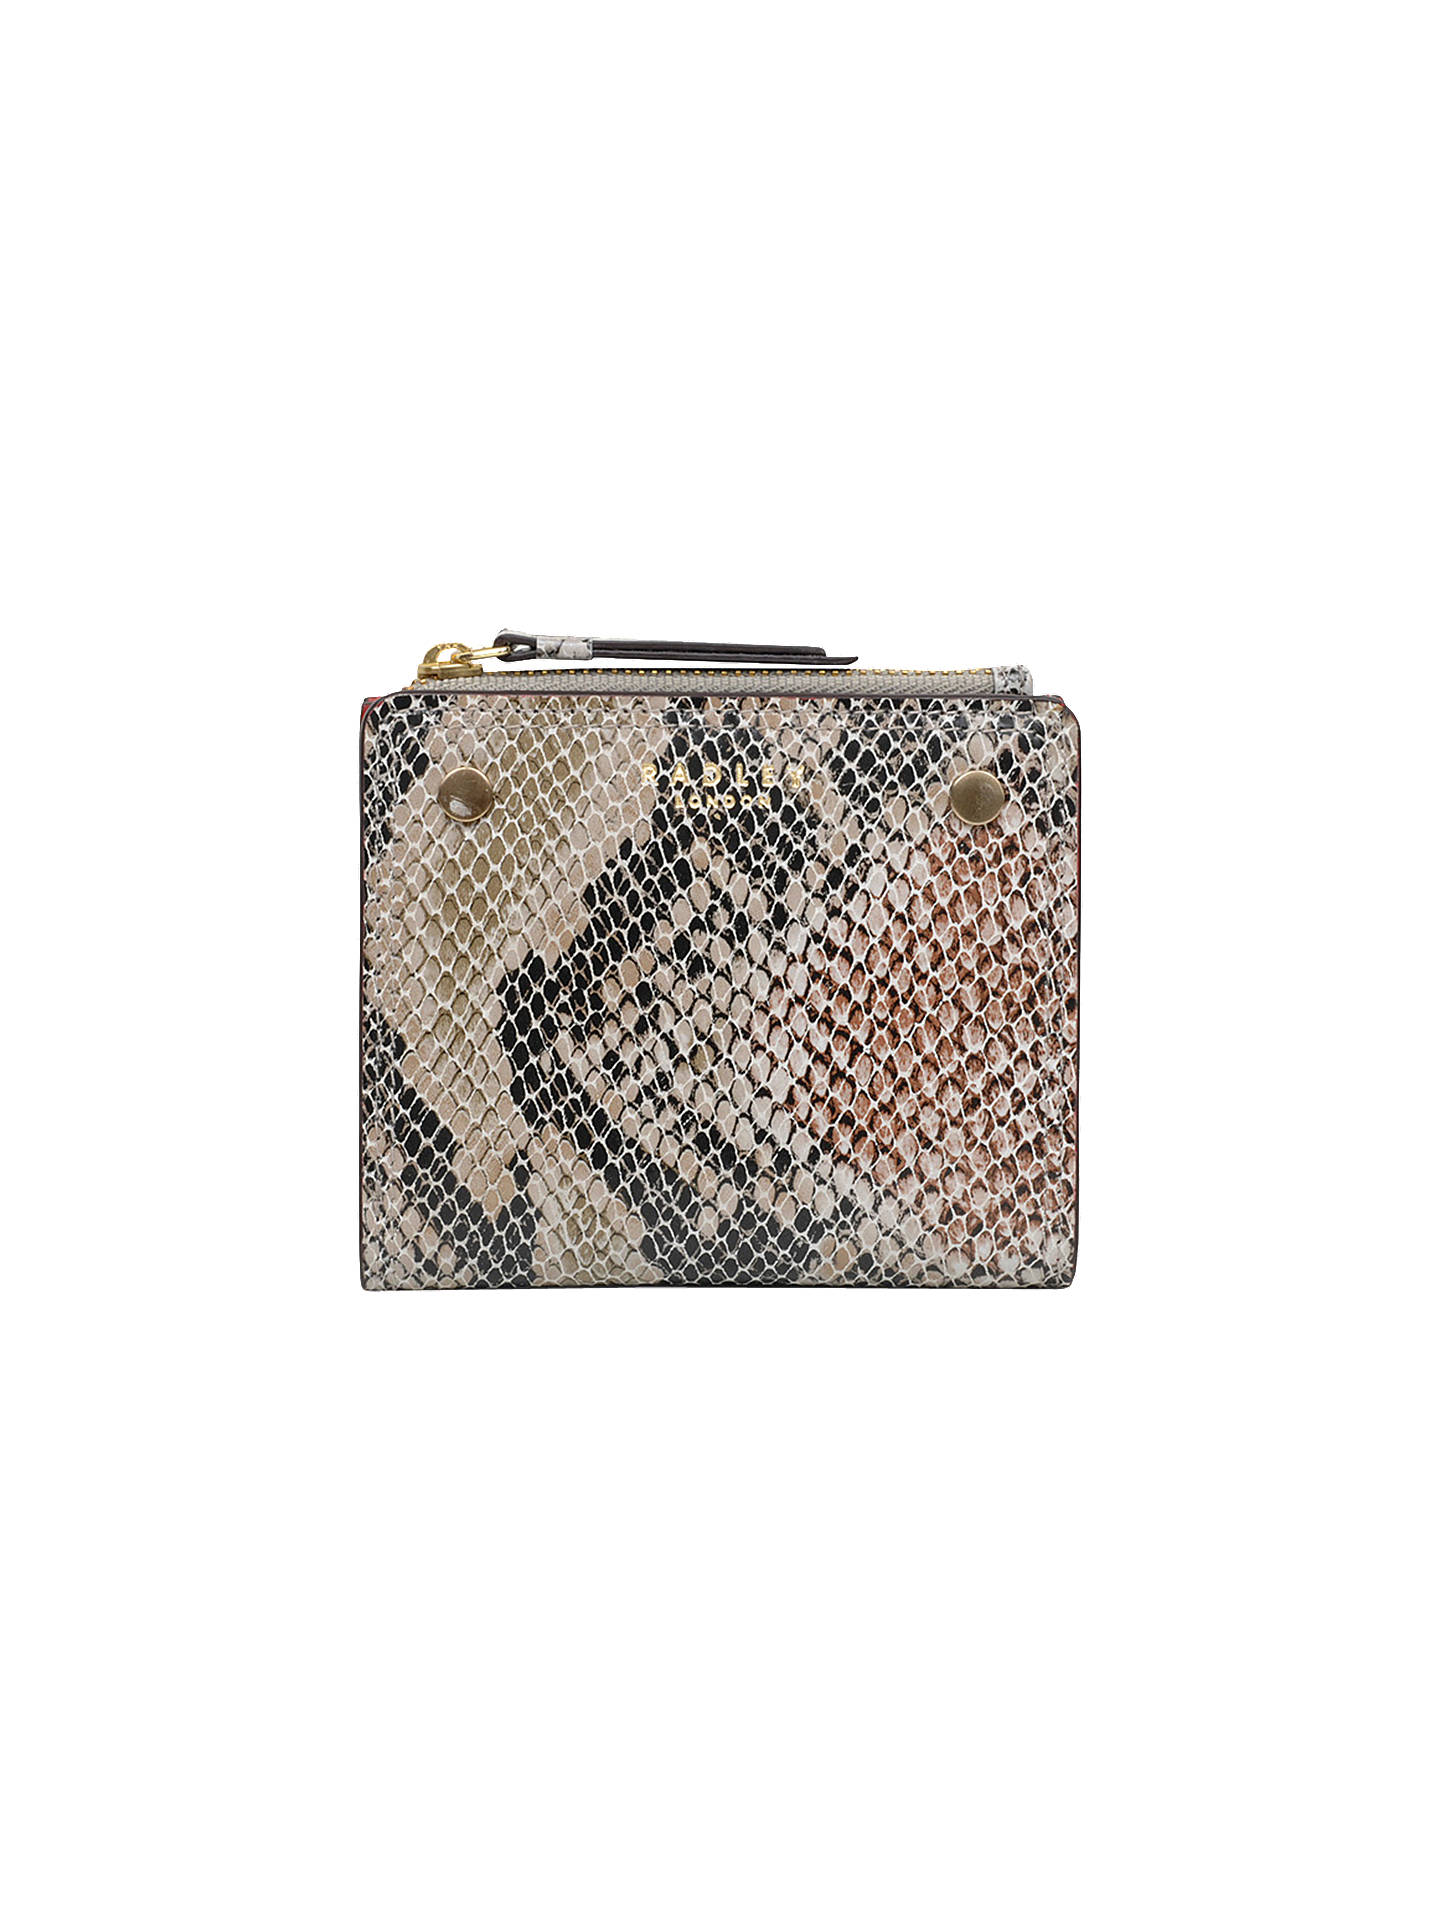 BuyRadley Clifton Hall Small Leather Purse, Animal Print Black Online at johnlewis.com